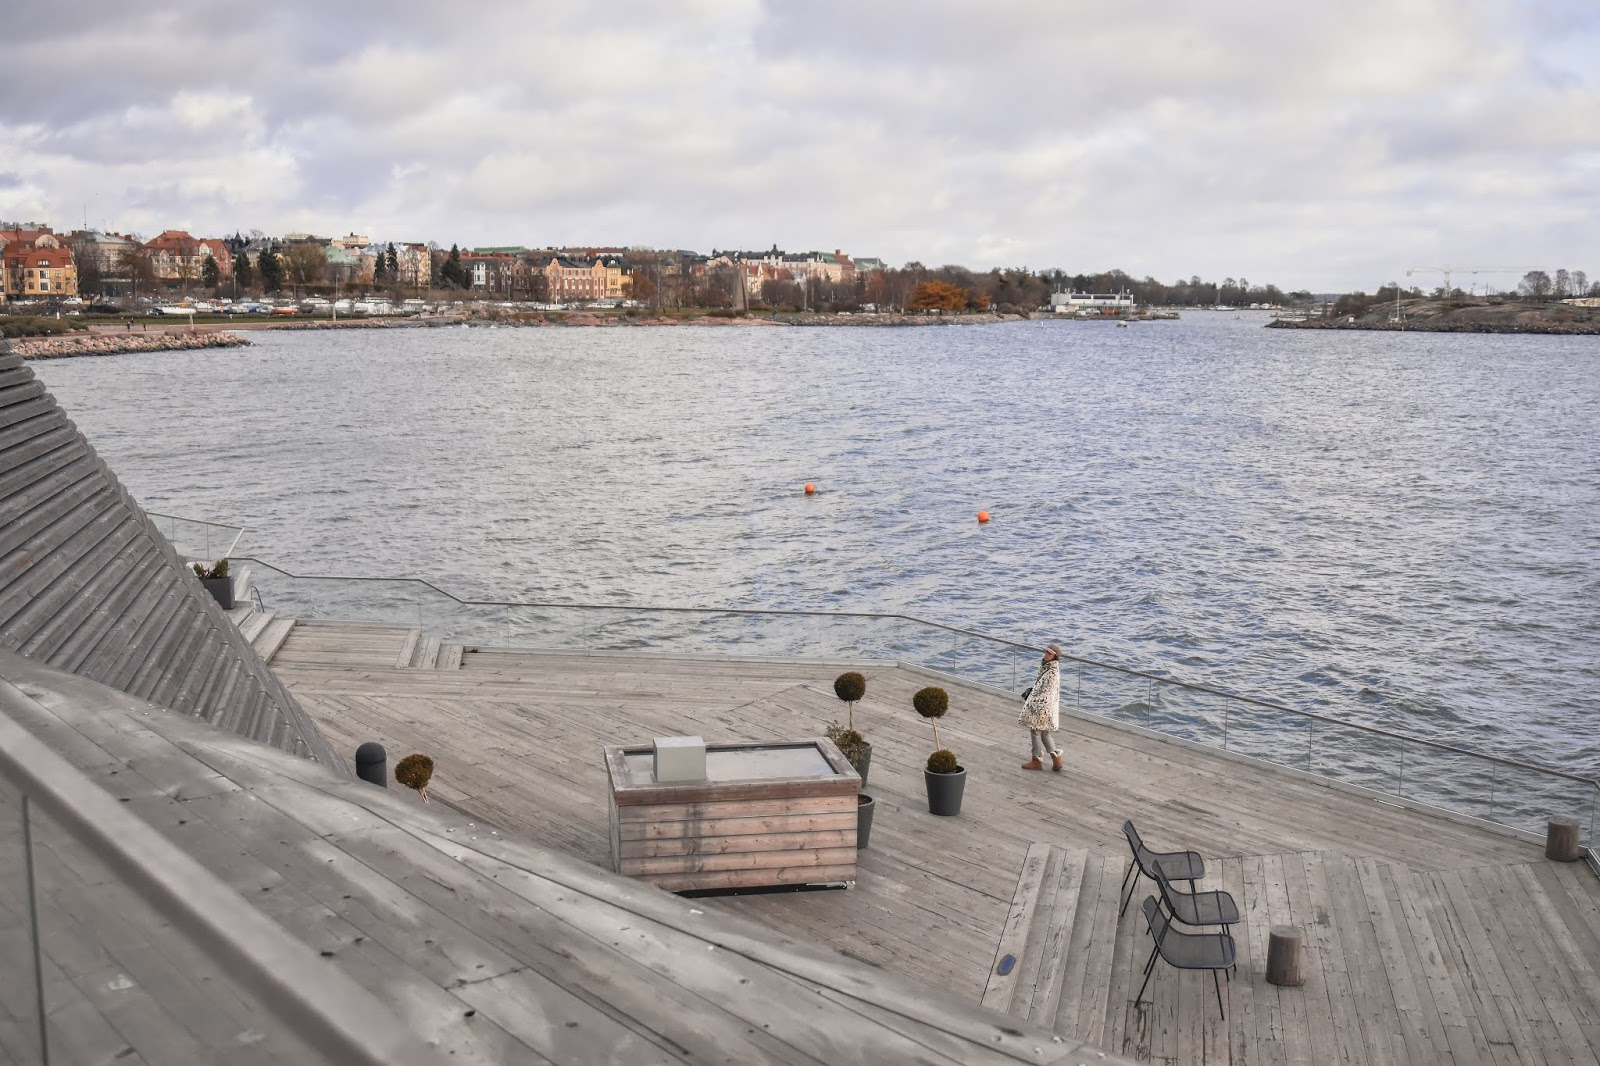 el-blog-de-silvia-rodriguez-lifestyle-travel-finlandia-helsinki-fur-coat-hym-blogger-influencer